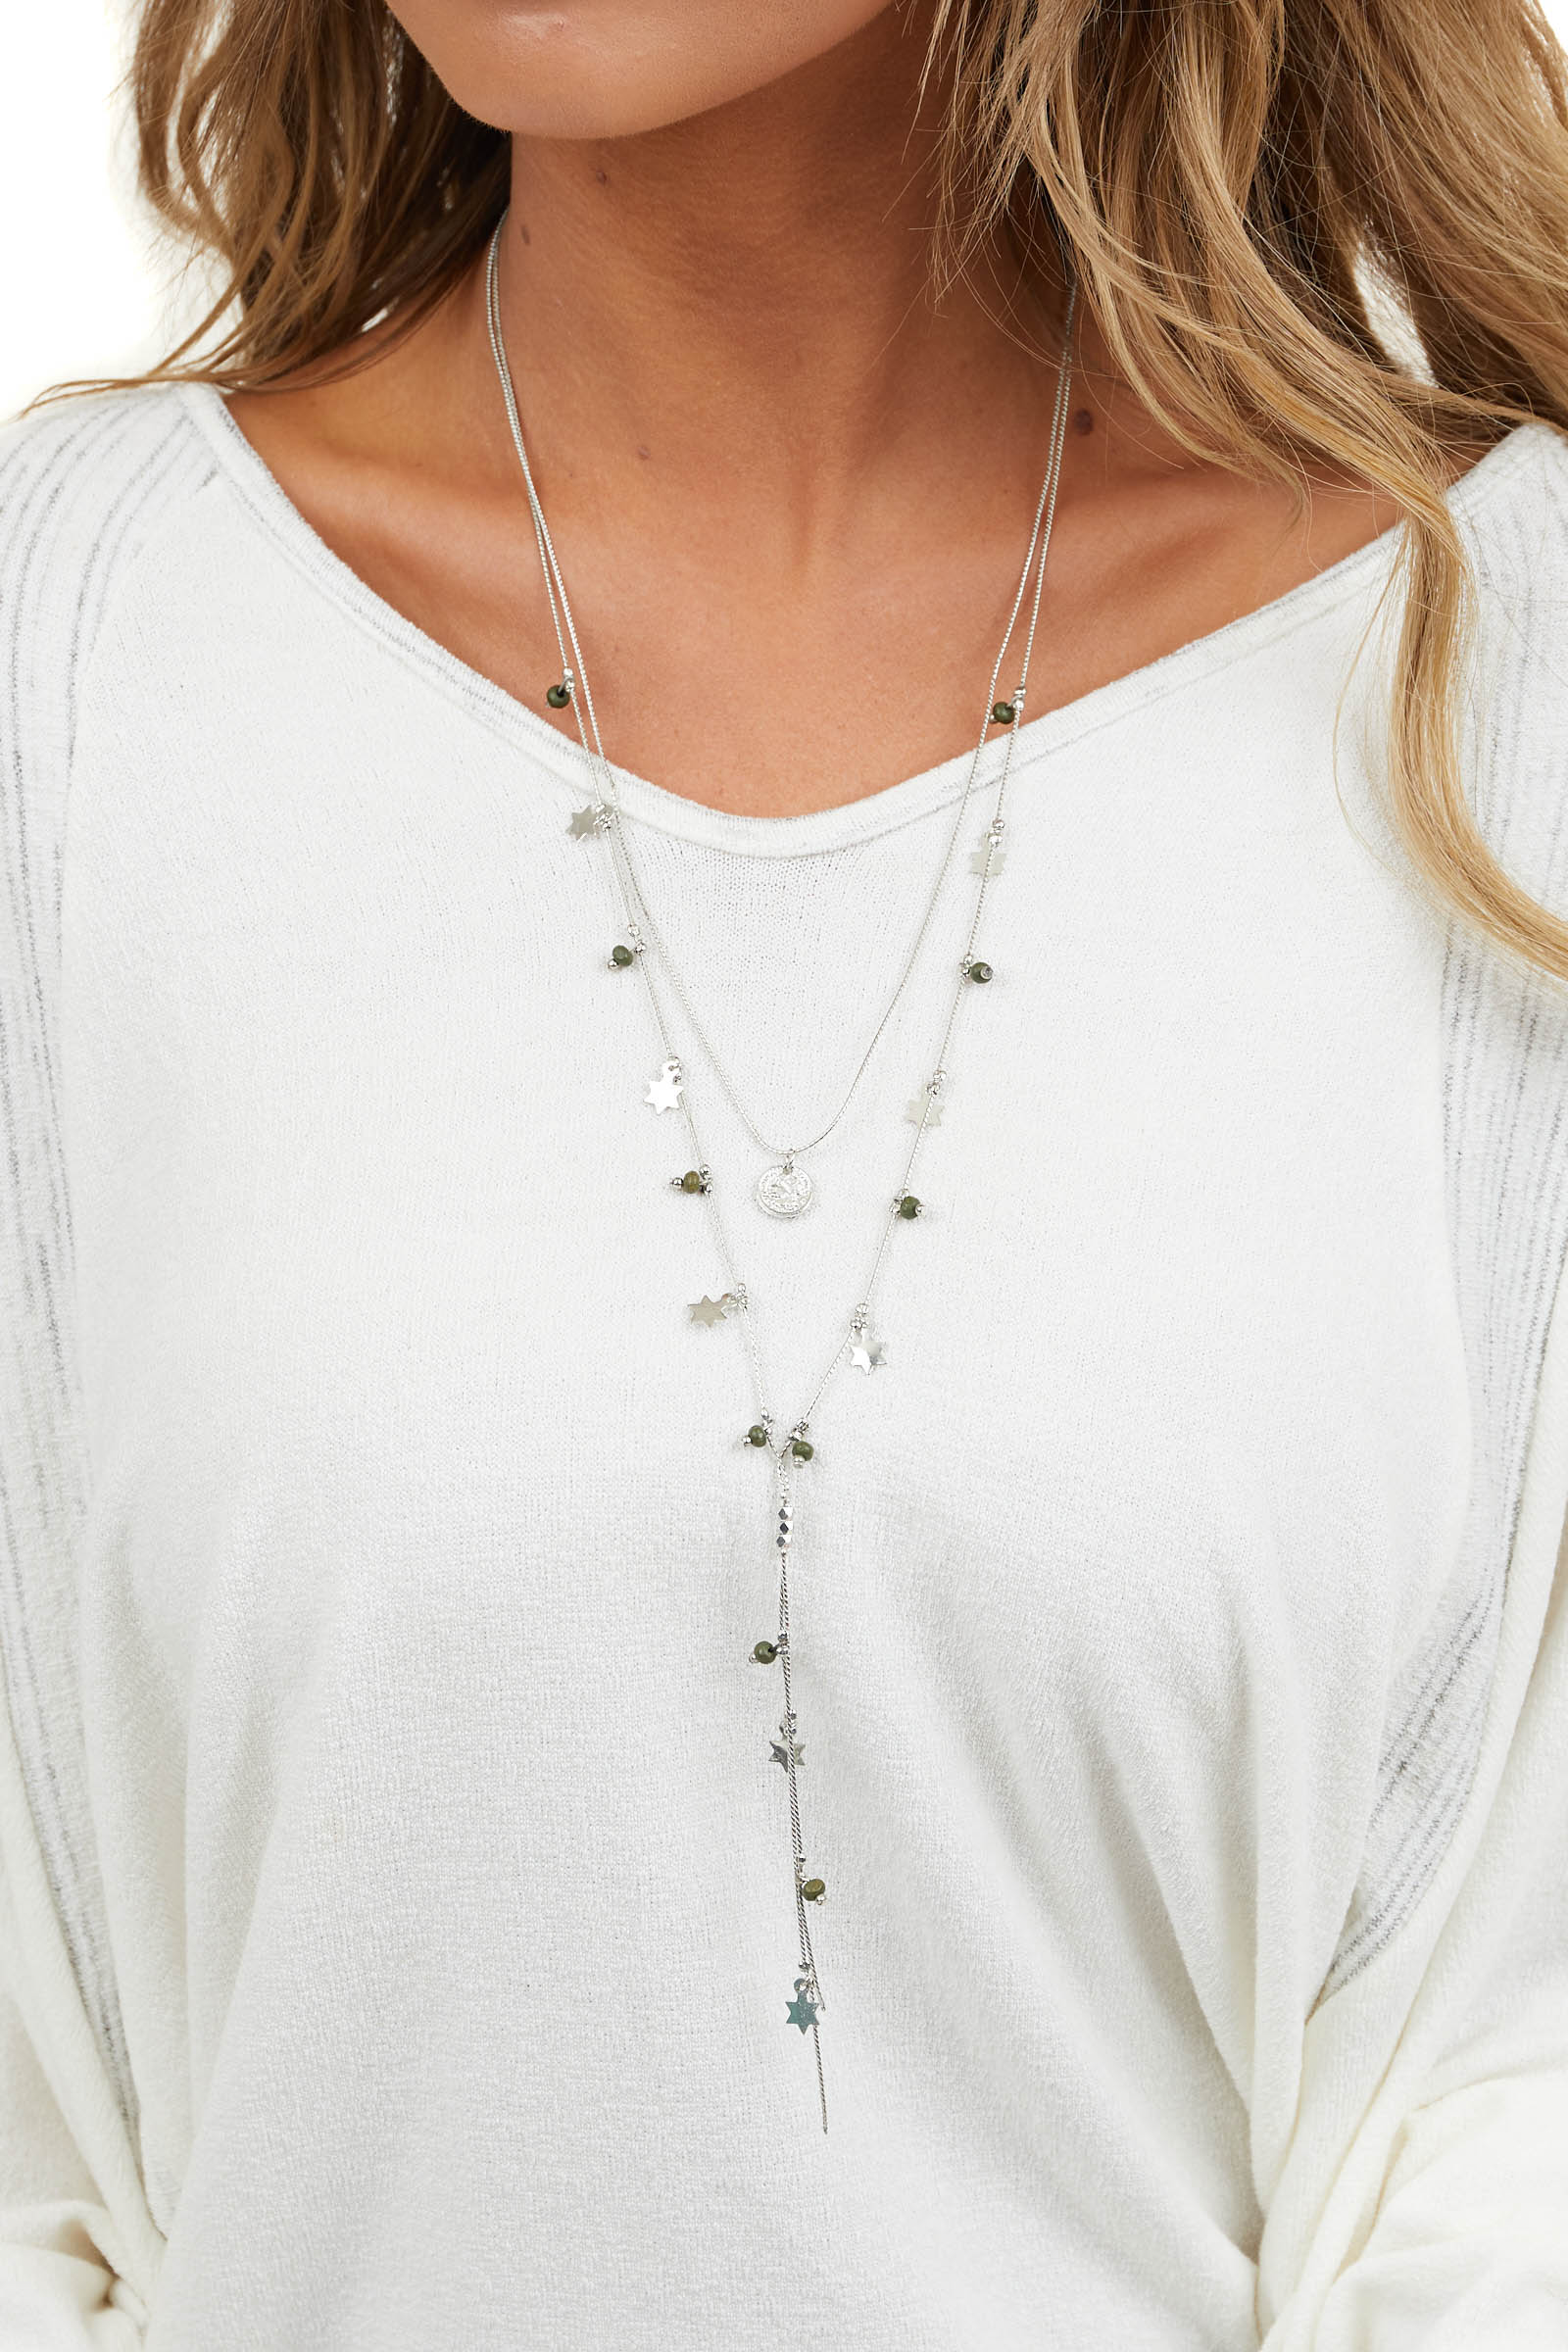 Silver Long Layered Necklace with Star Charm Details